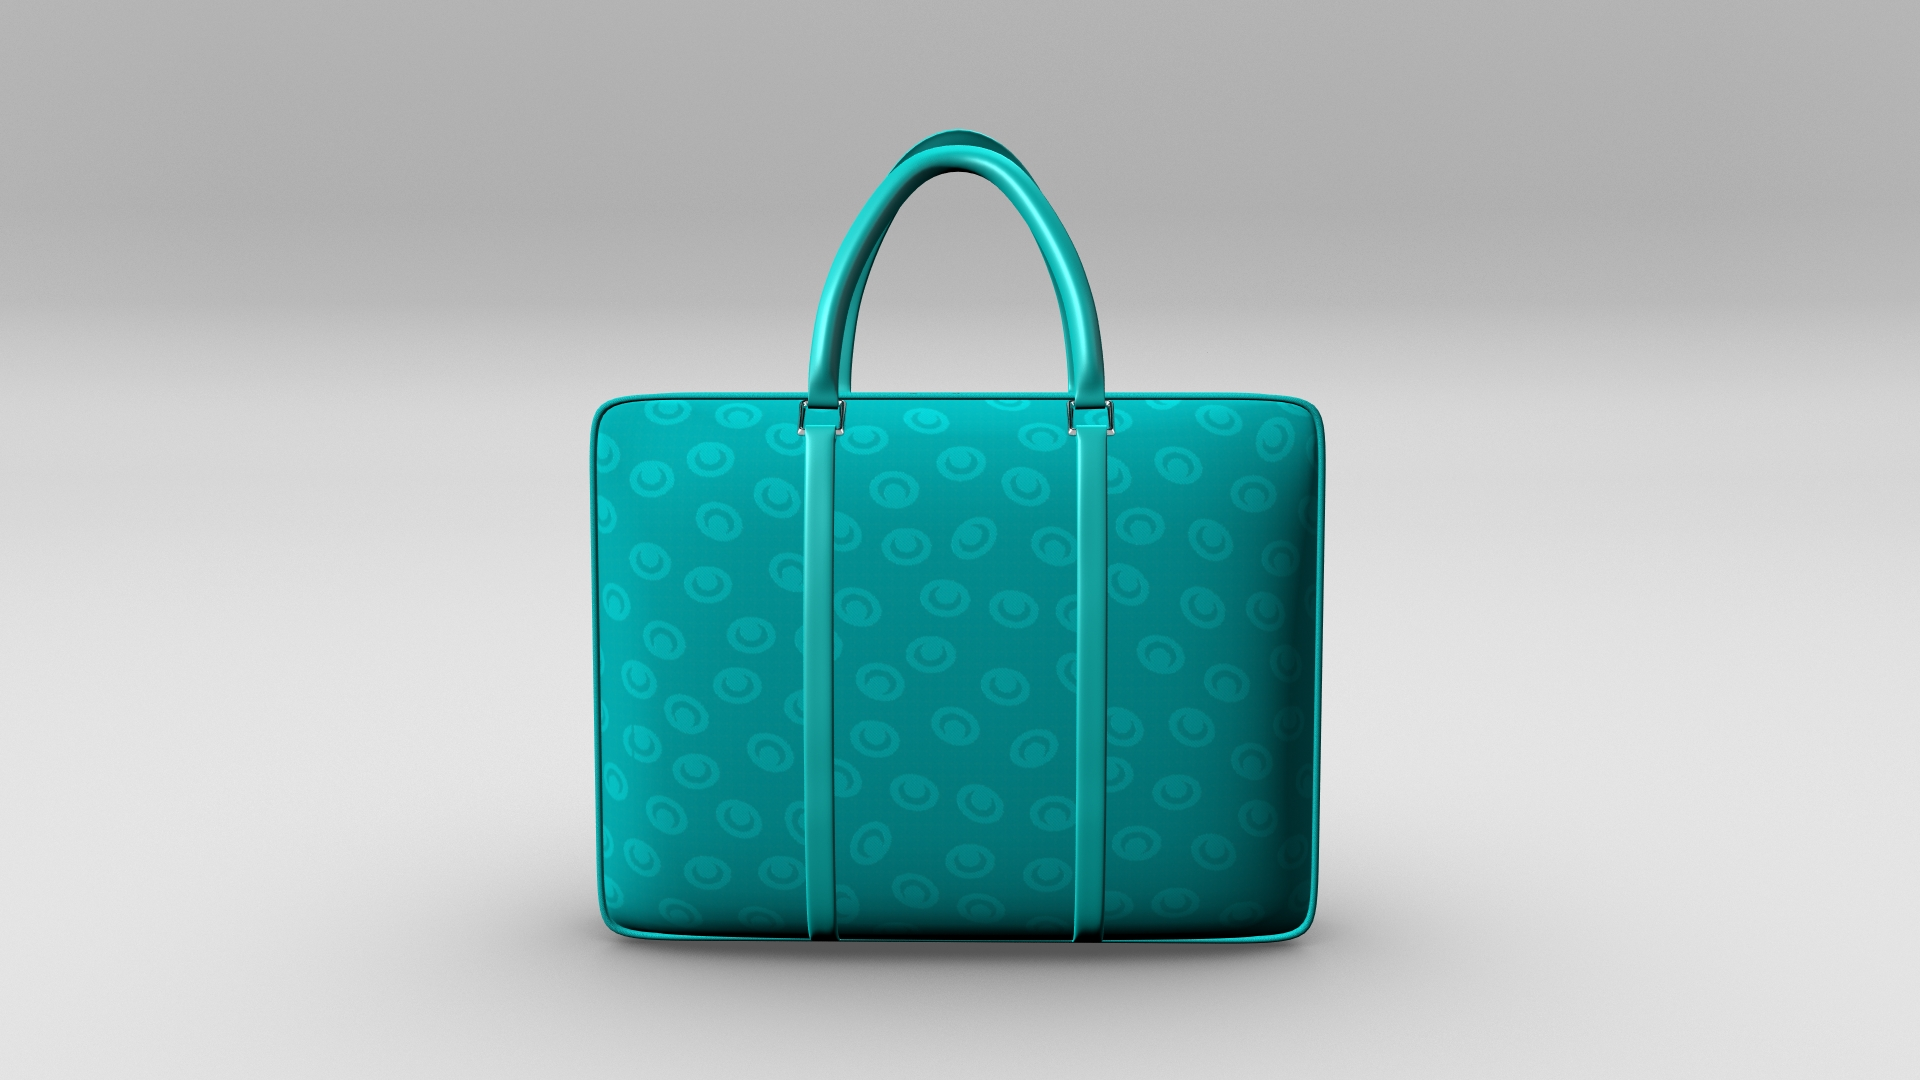 ladies handbag 3d model max fbx ma mb obj 286059